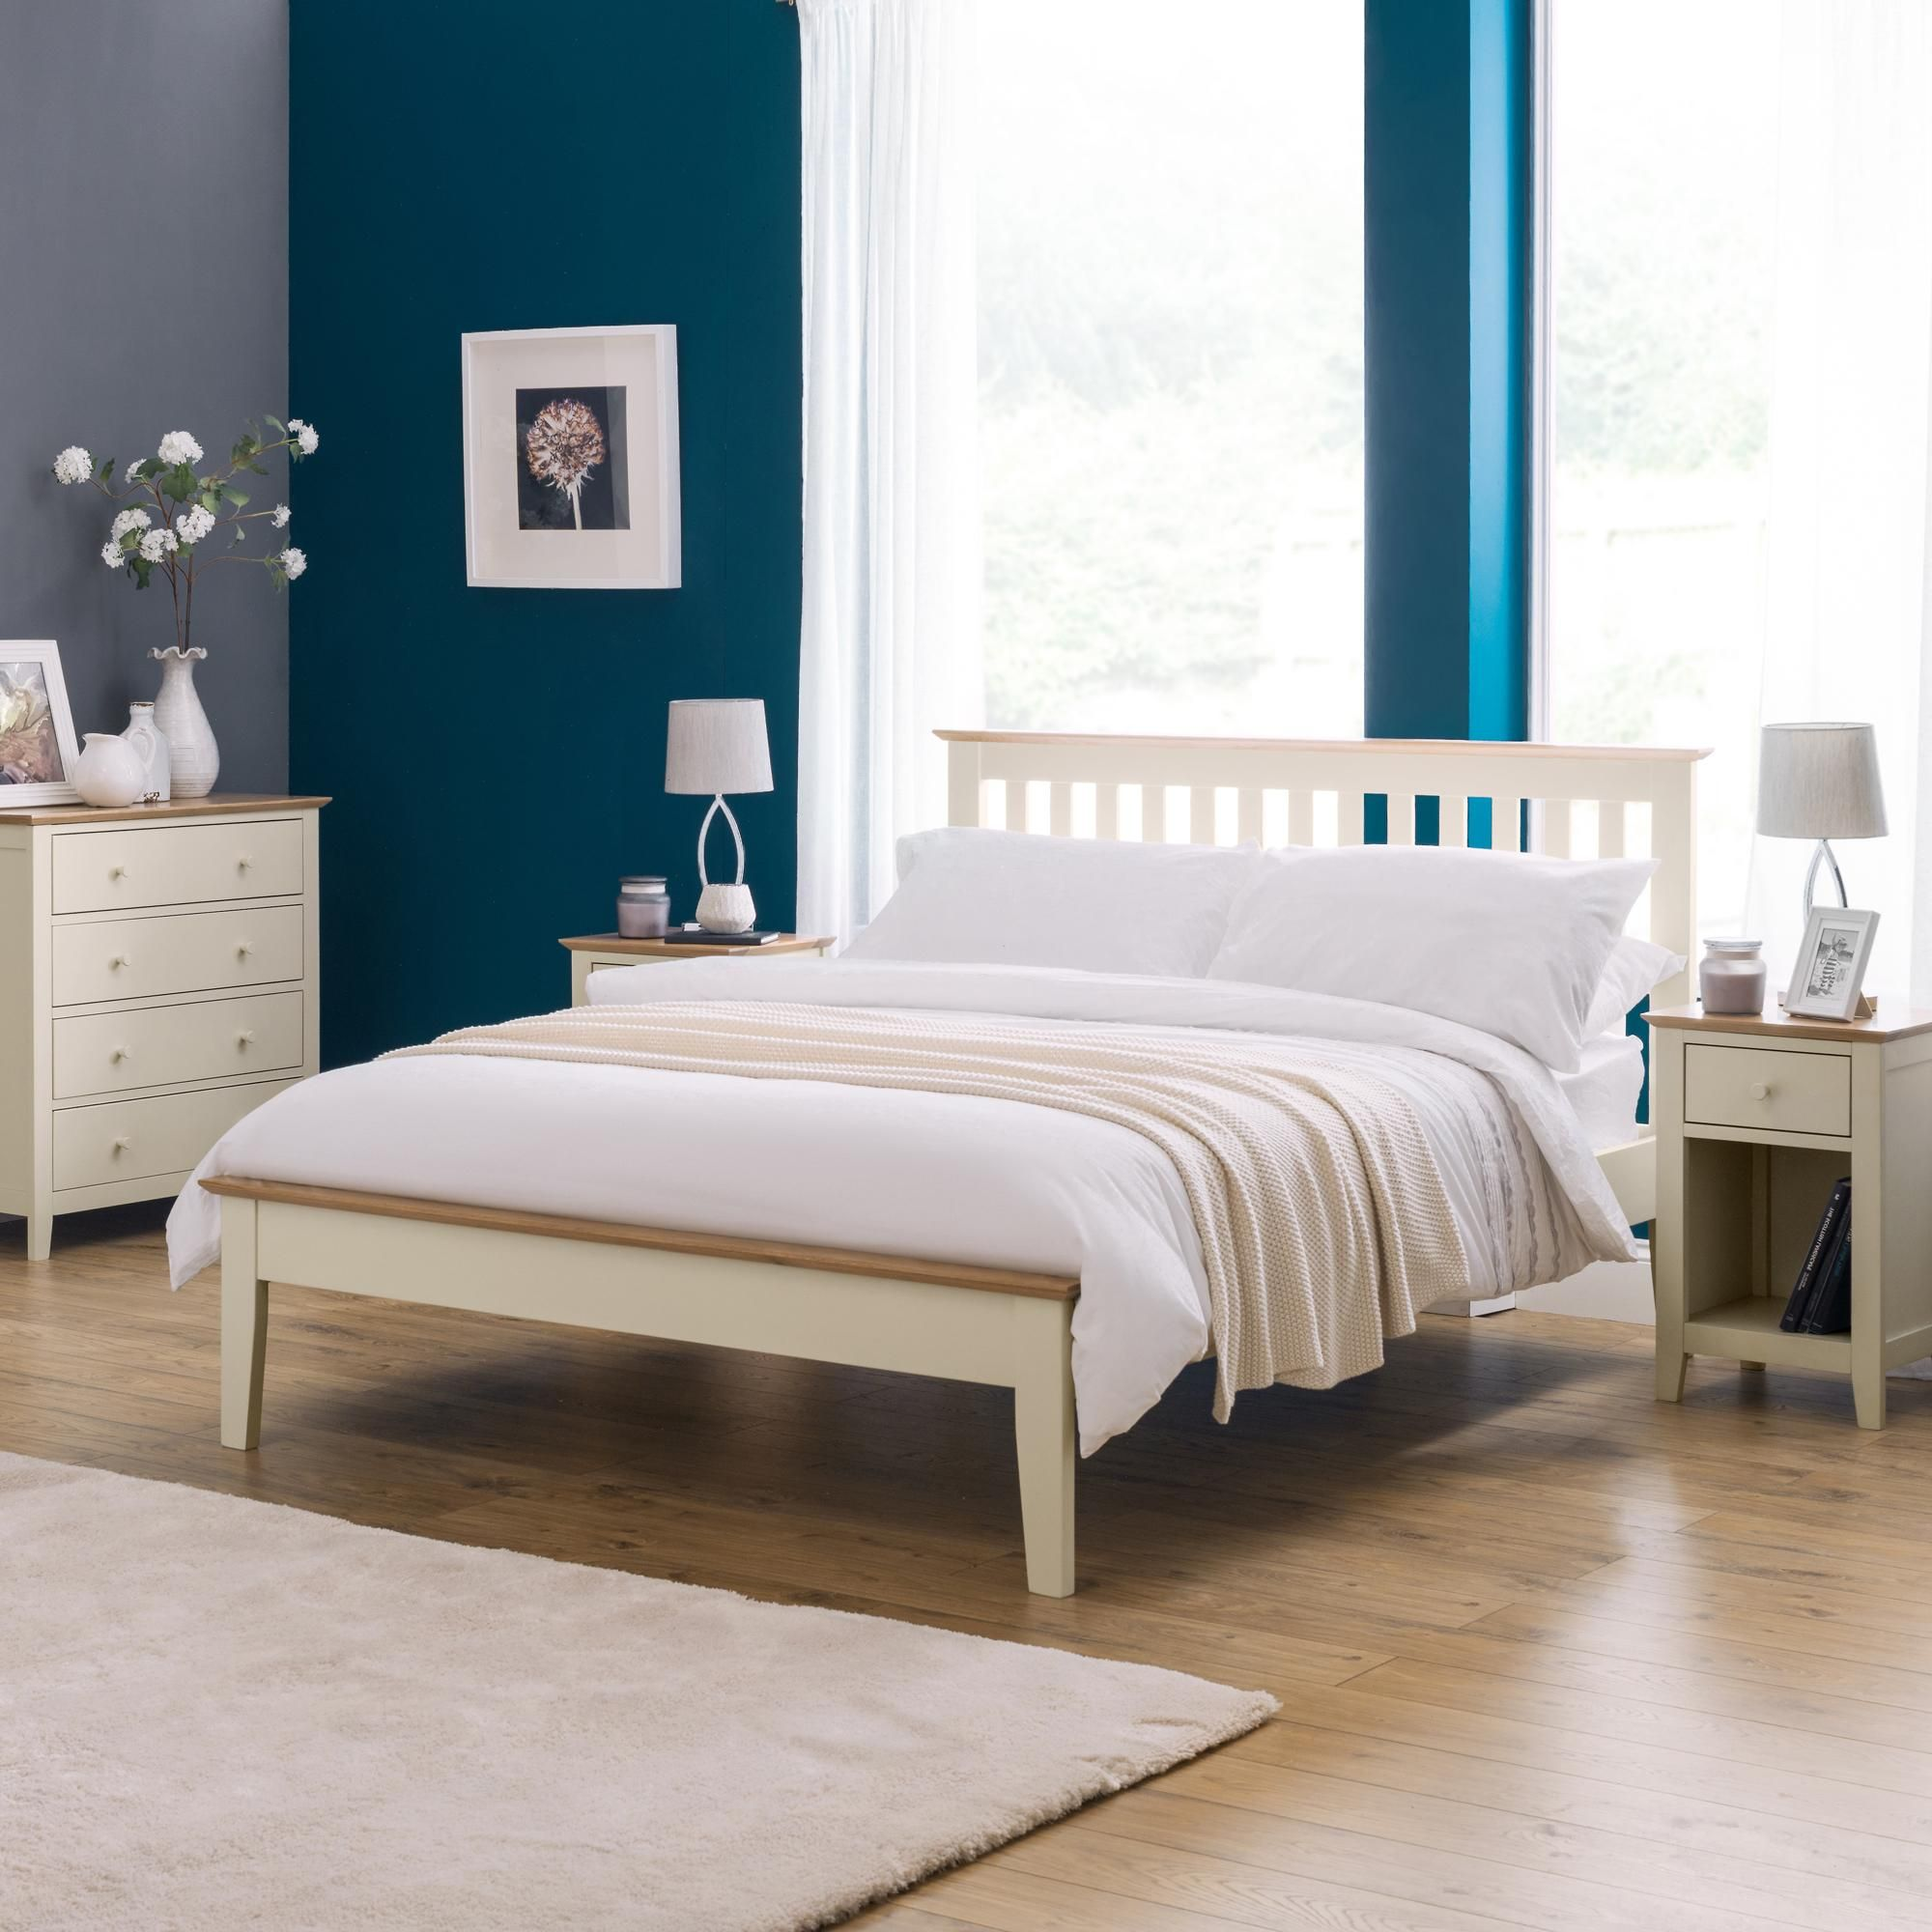 Salerno Two Tone Ivory Wooden Bed Frame In 2020 Bed Frame With